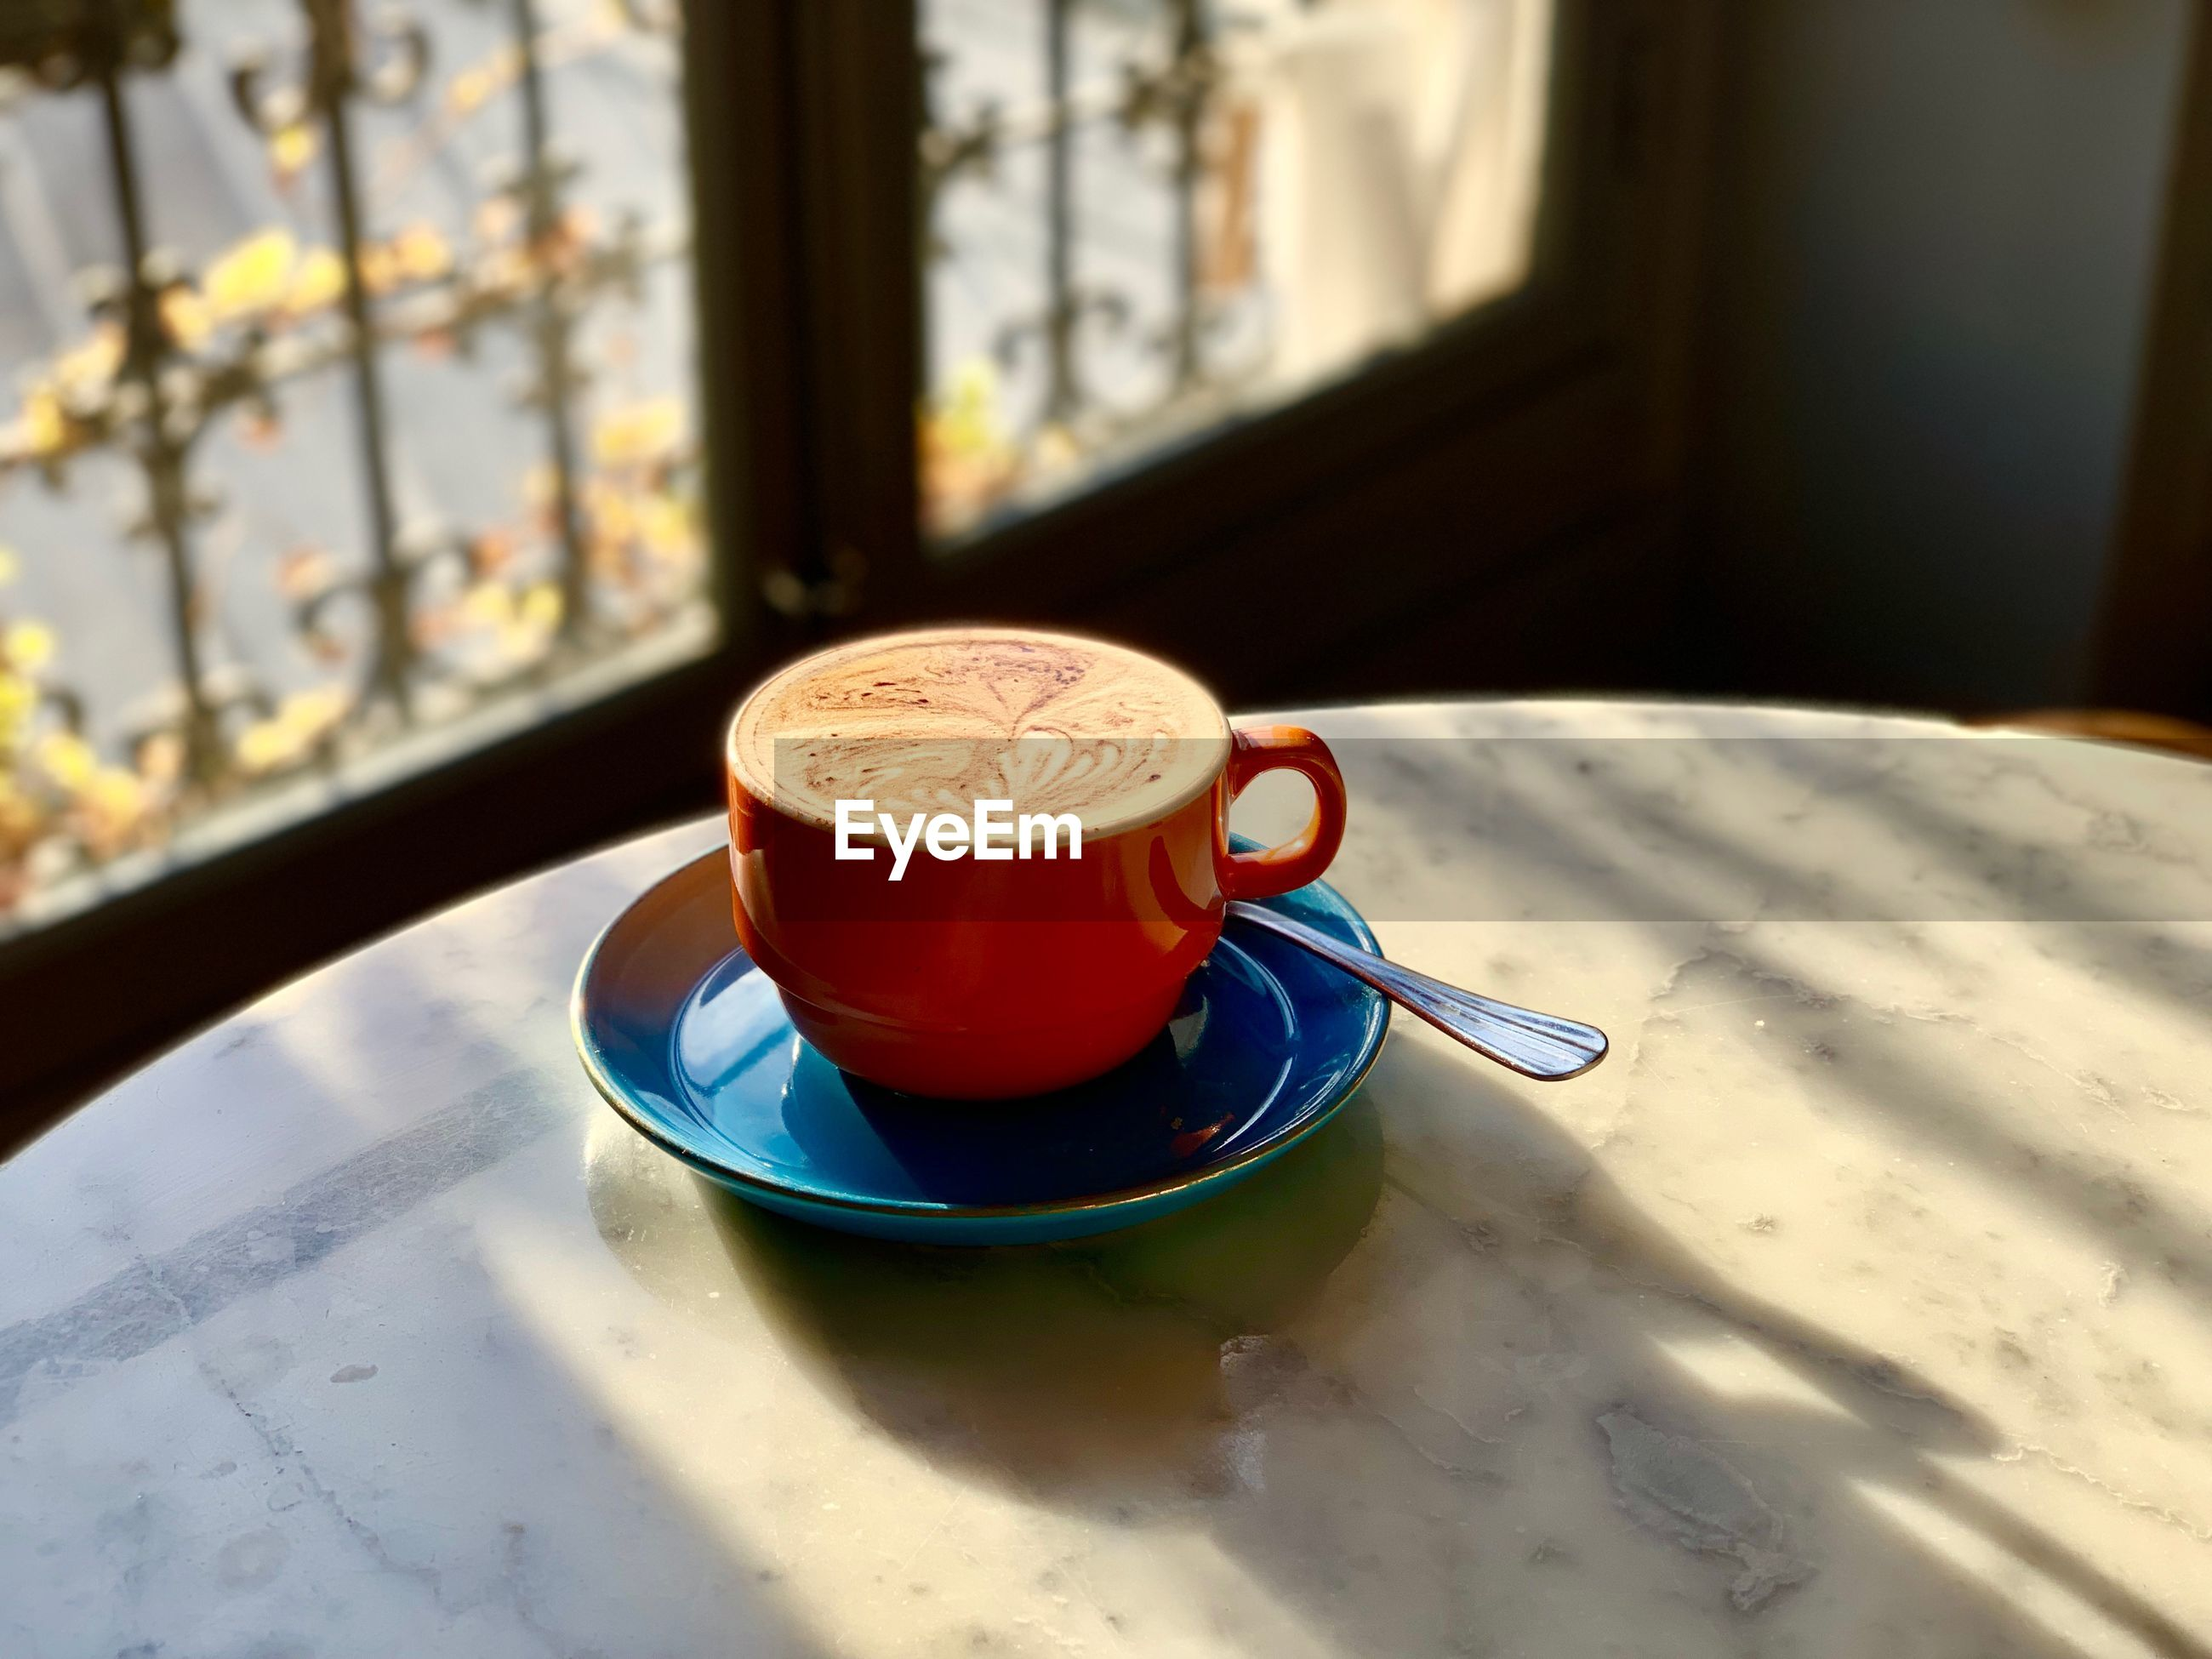 HIGH ANGLE VIEW OF COFFEE ON TABLE AGAINST WINDOW